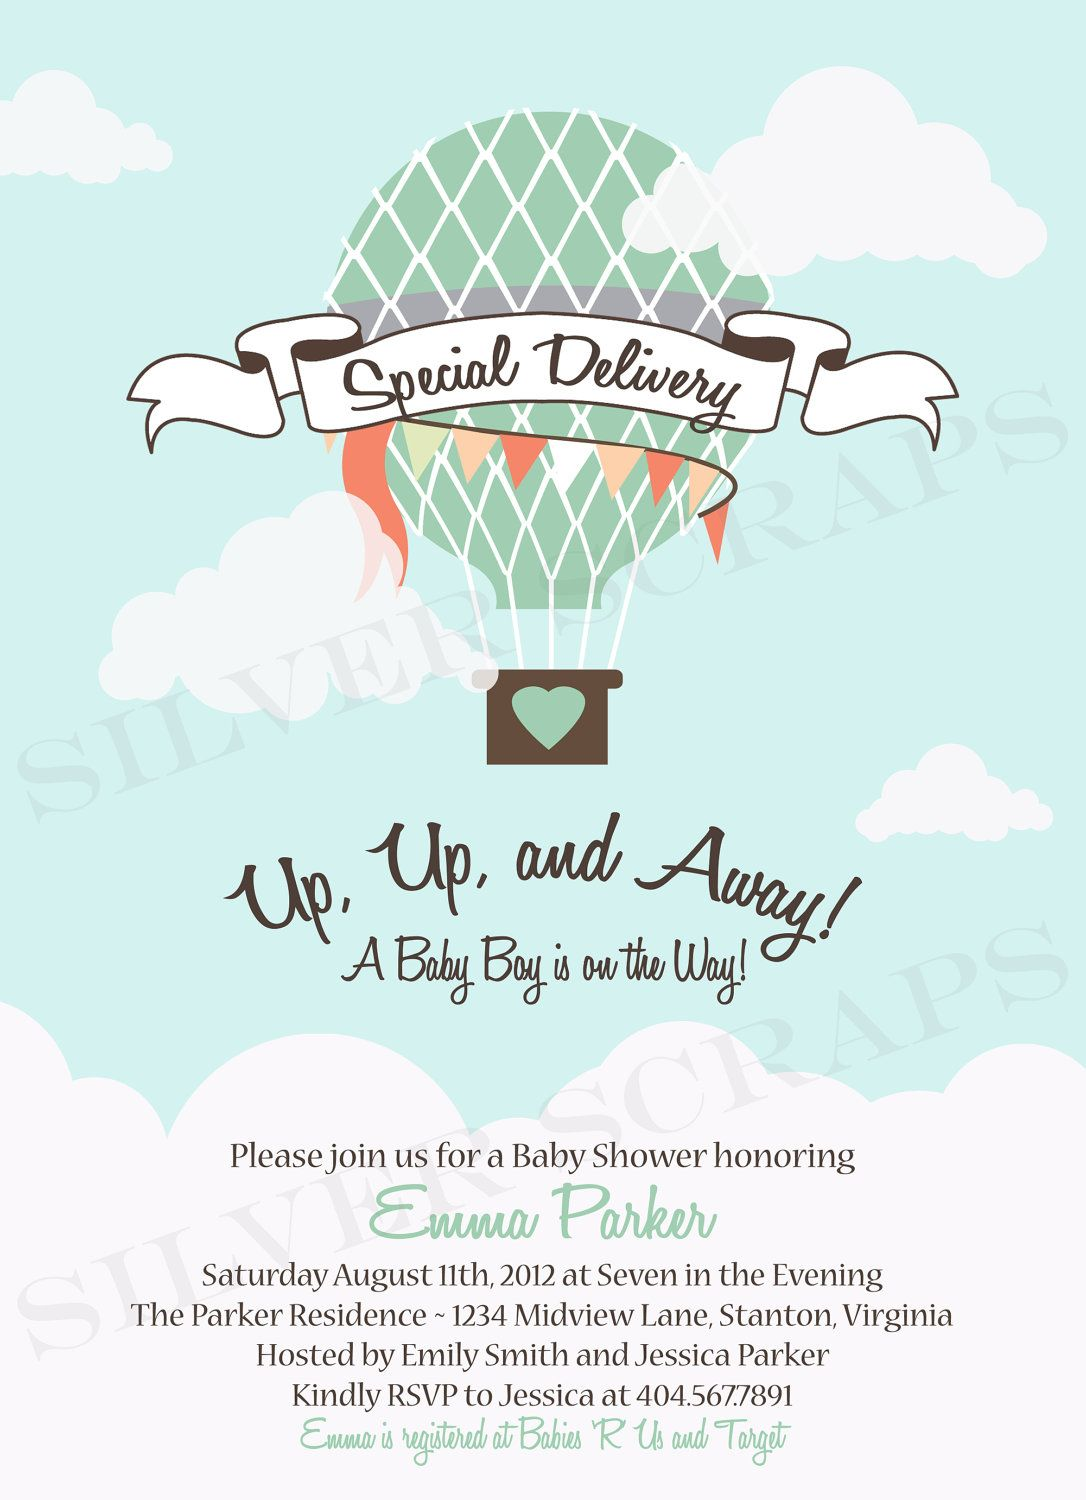 Blue Skies  Custom Digital Hot Air Balloon Baby Shower Invitation  Girl,  Boy, Twins, Surprise   Red, Blue, Aqua, Yellow  5 Printable Designs